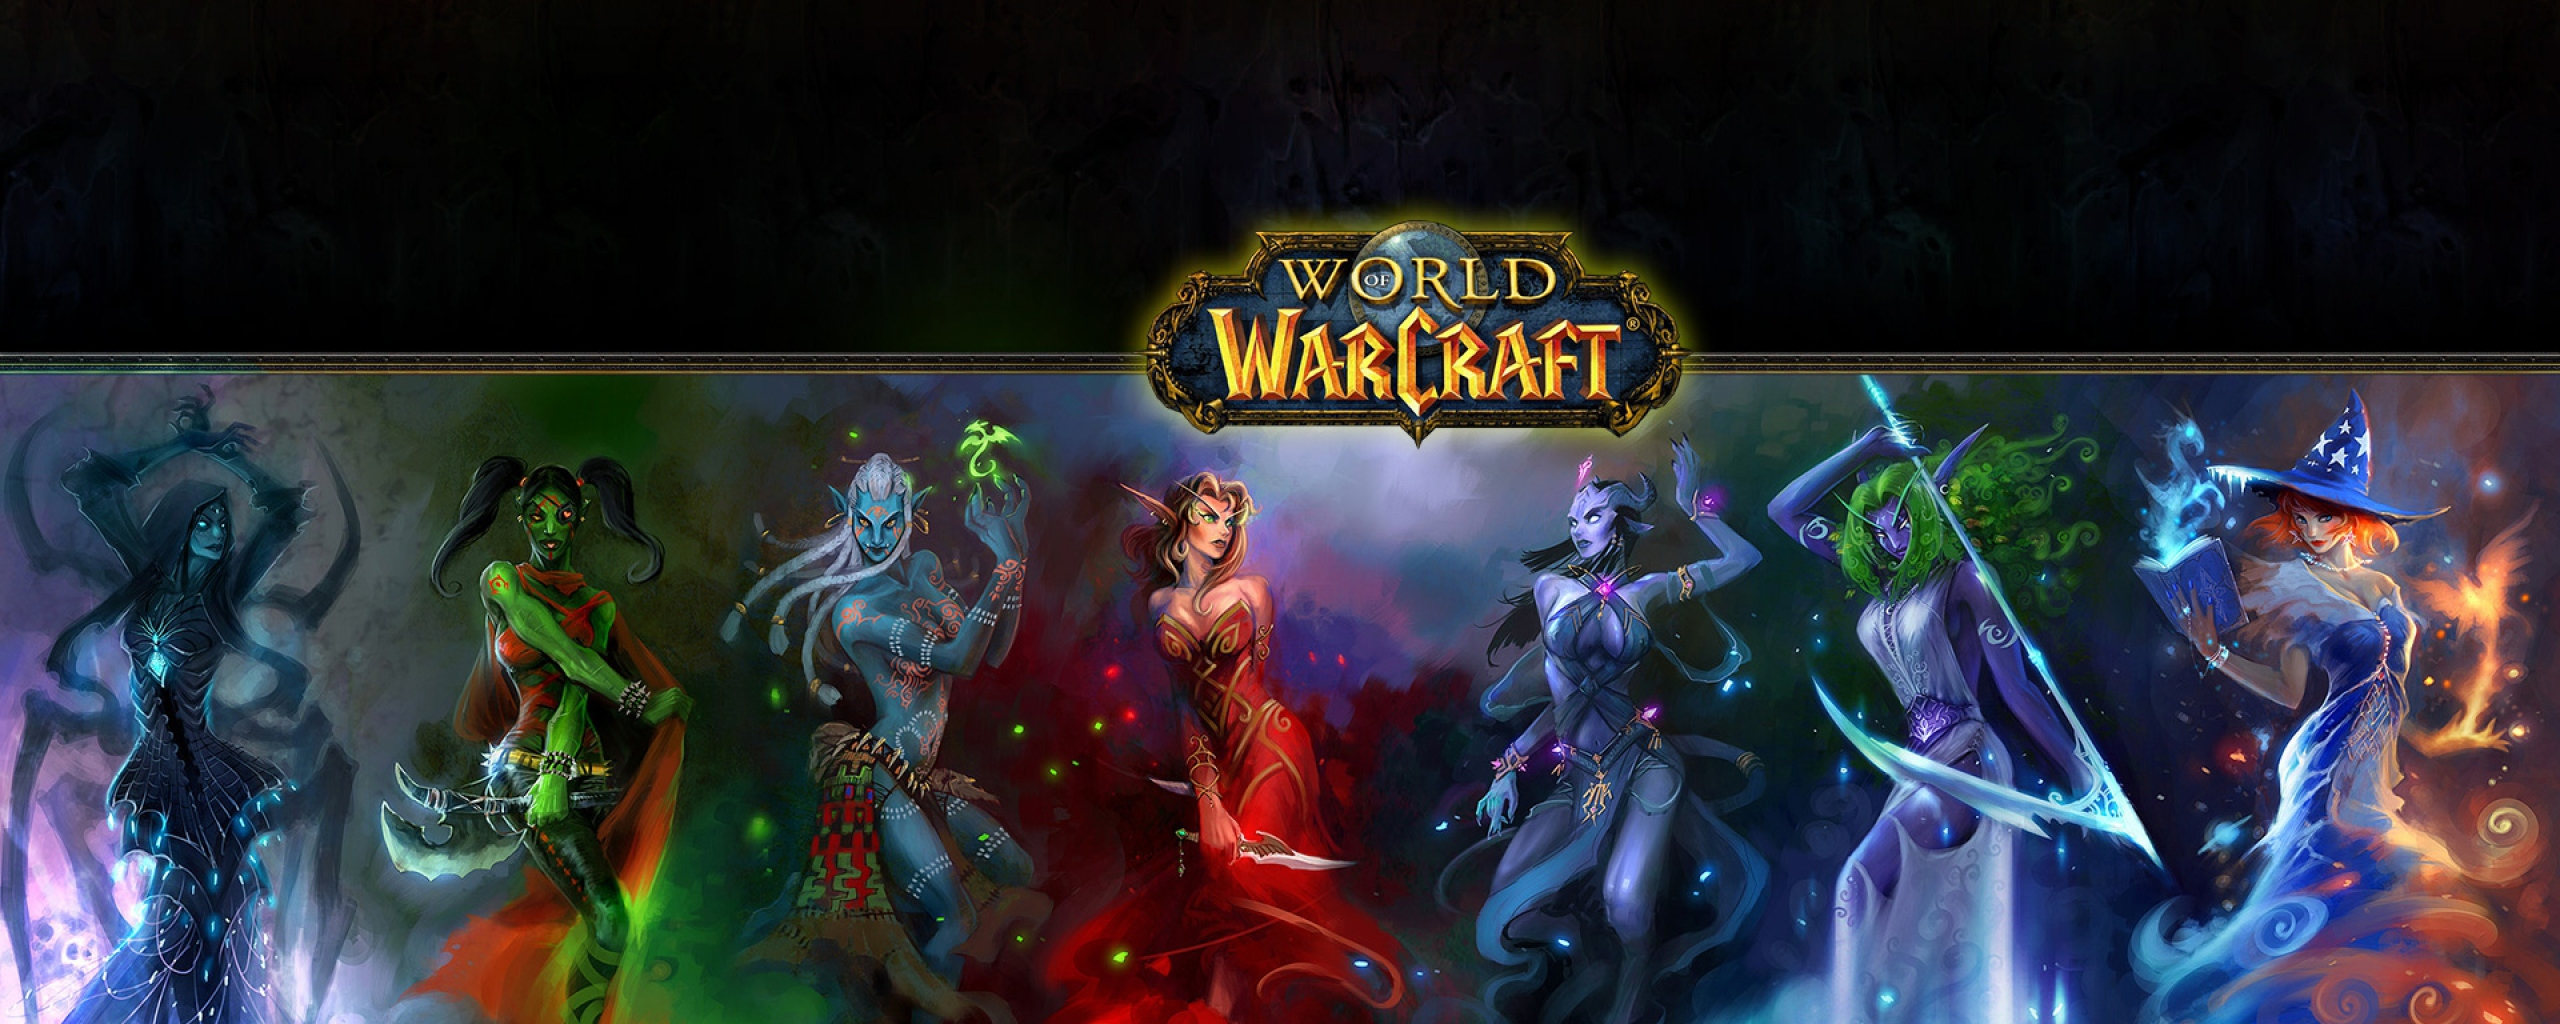 Download Wallpaper 2560x1024 World of warcraft, Characters, Faces